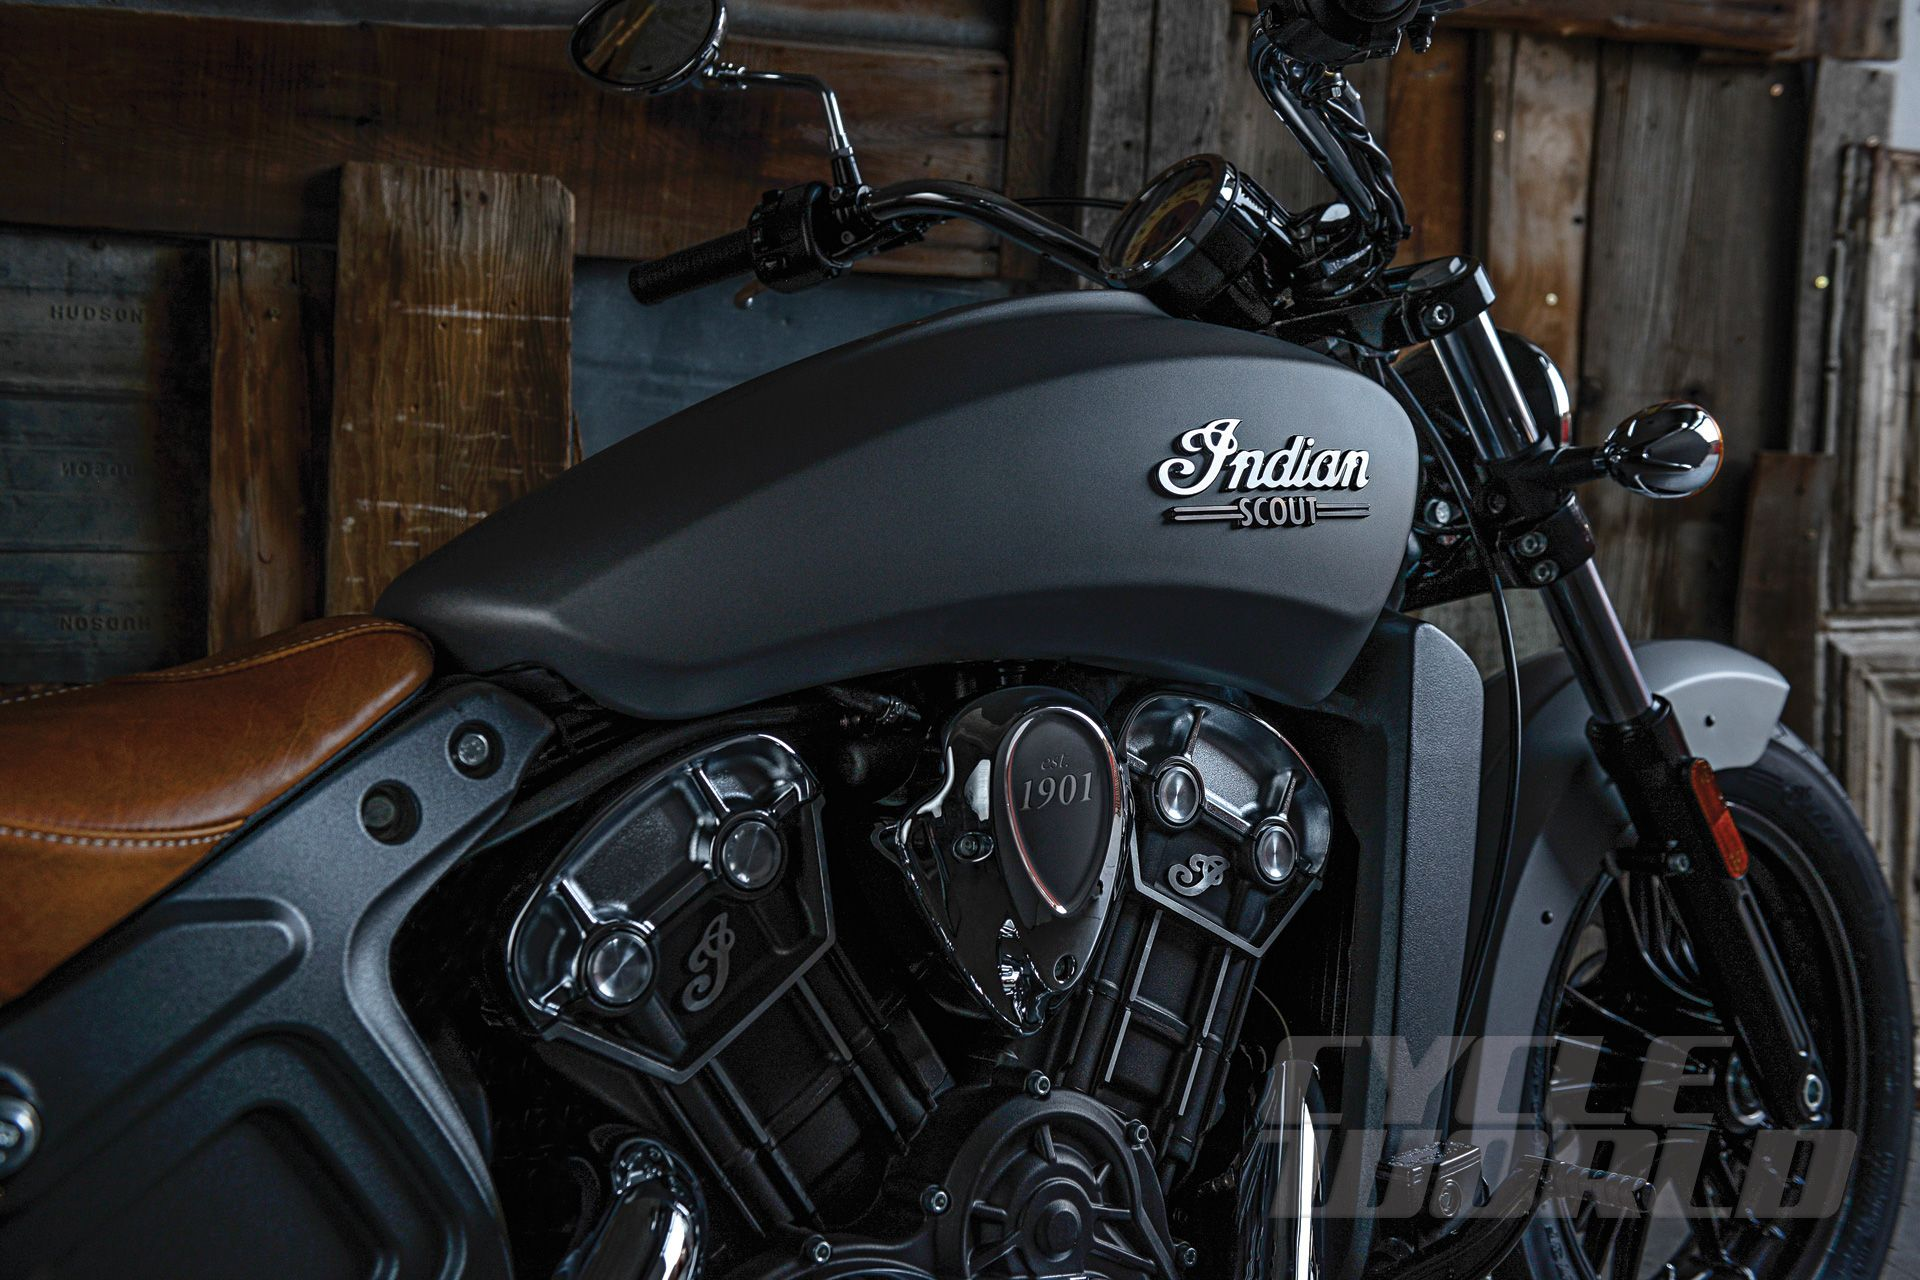 2015 Indian Scout Cruiser Motorcycle Review Road Test Photos Specs Indian Motorcycle Scout 2015 Indian Scout Indian Scout